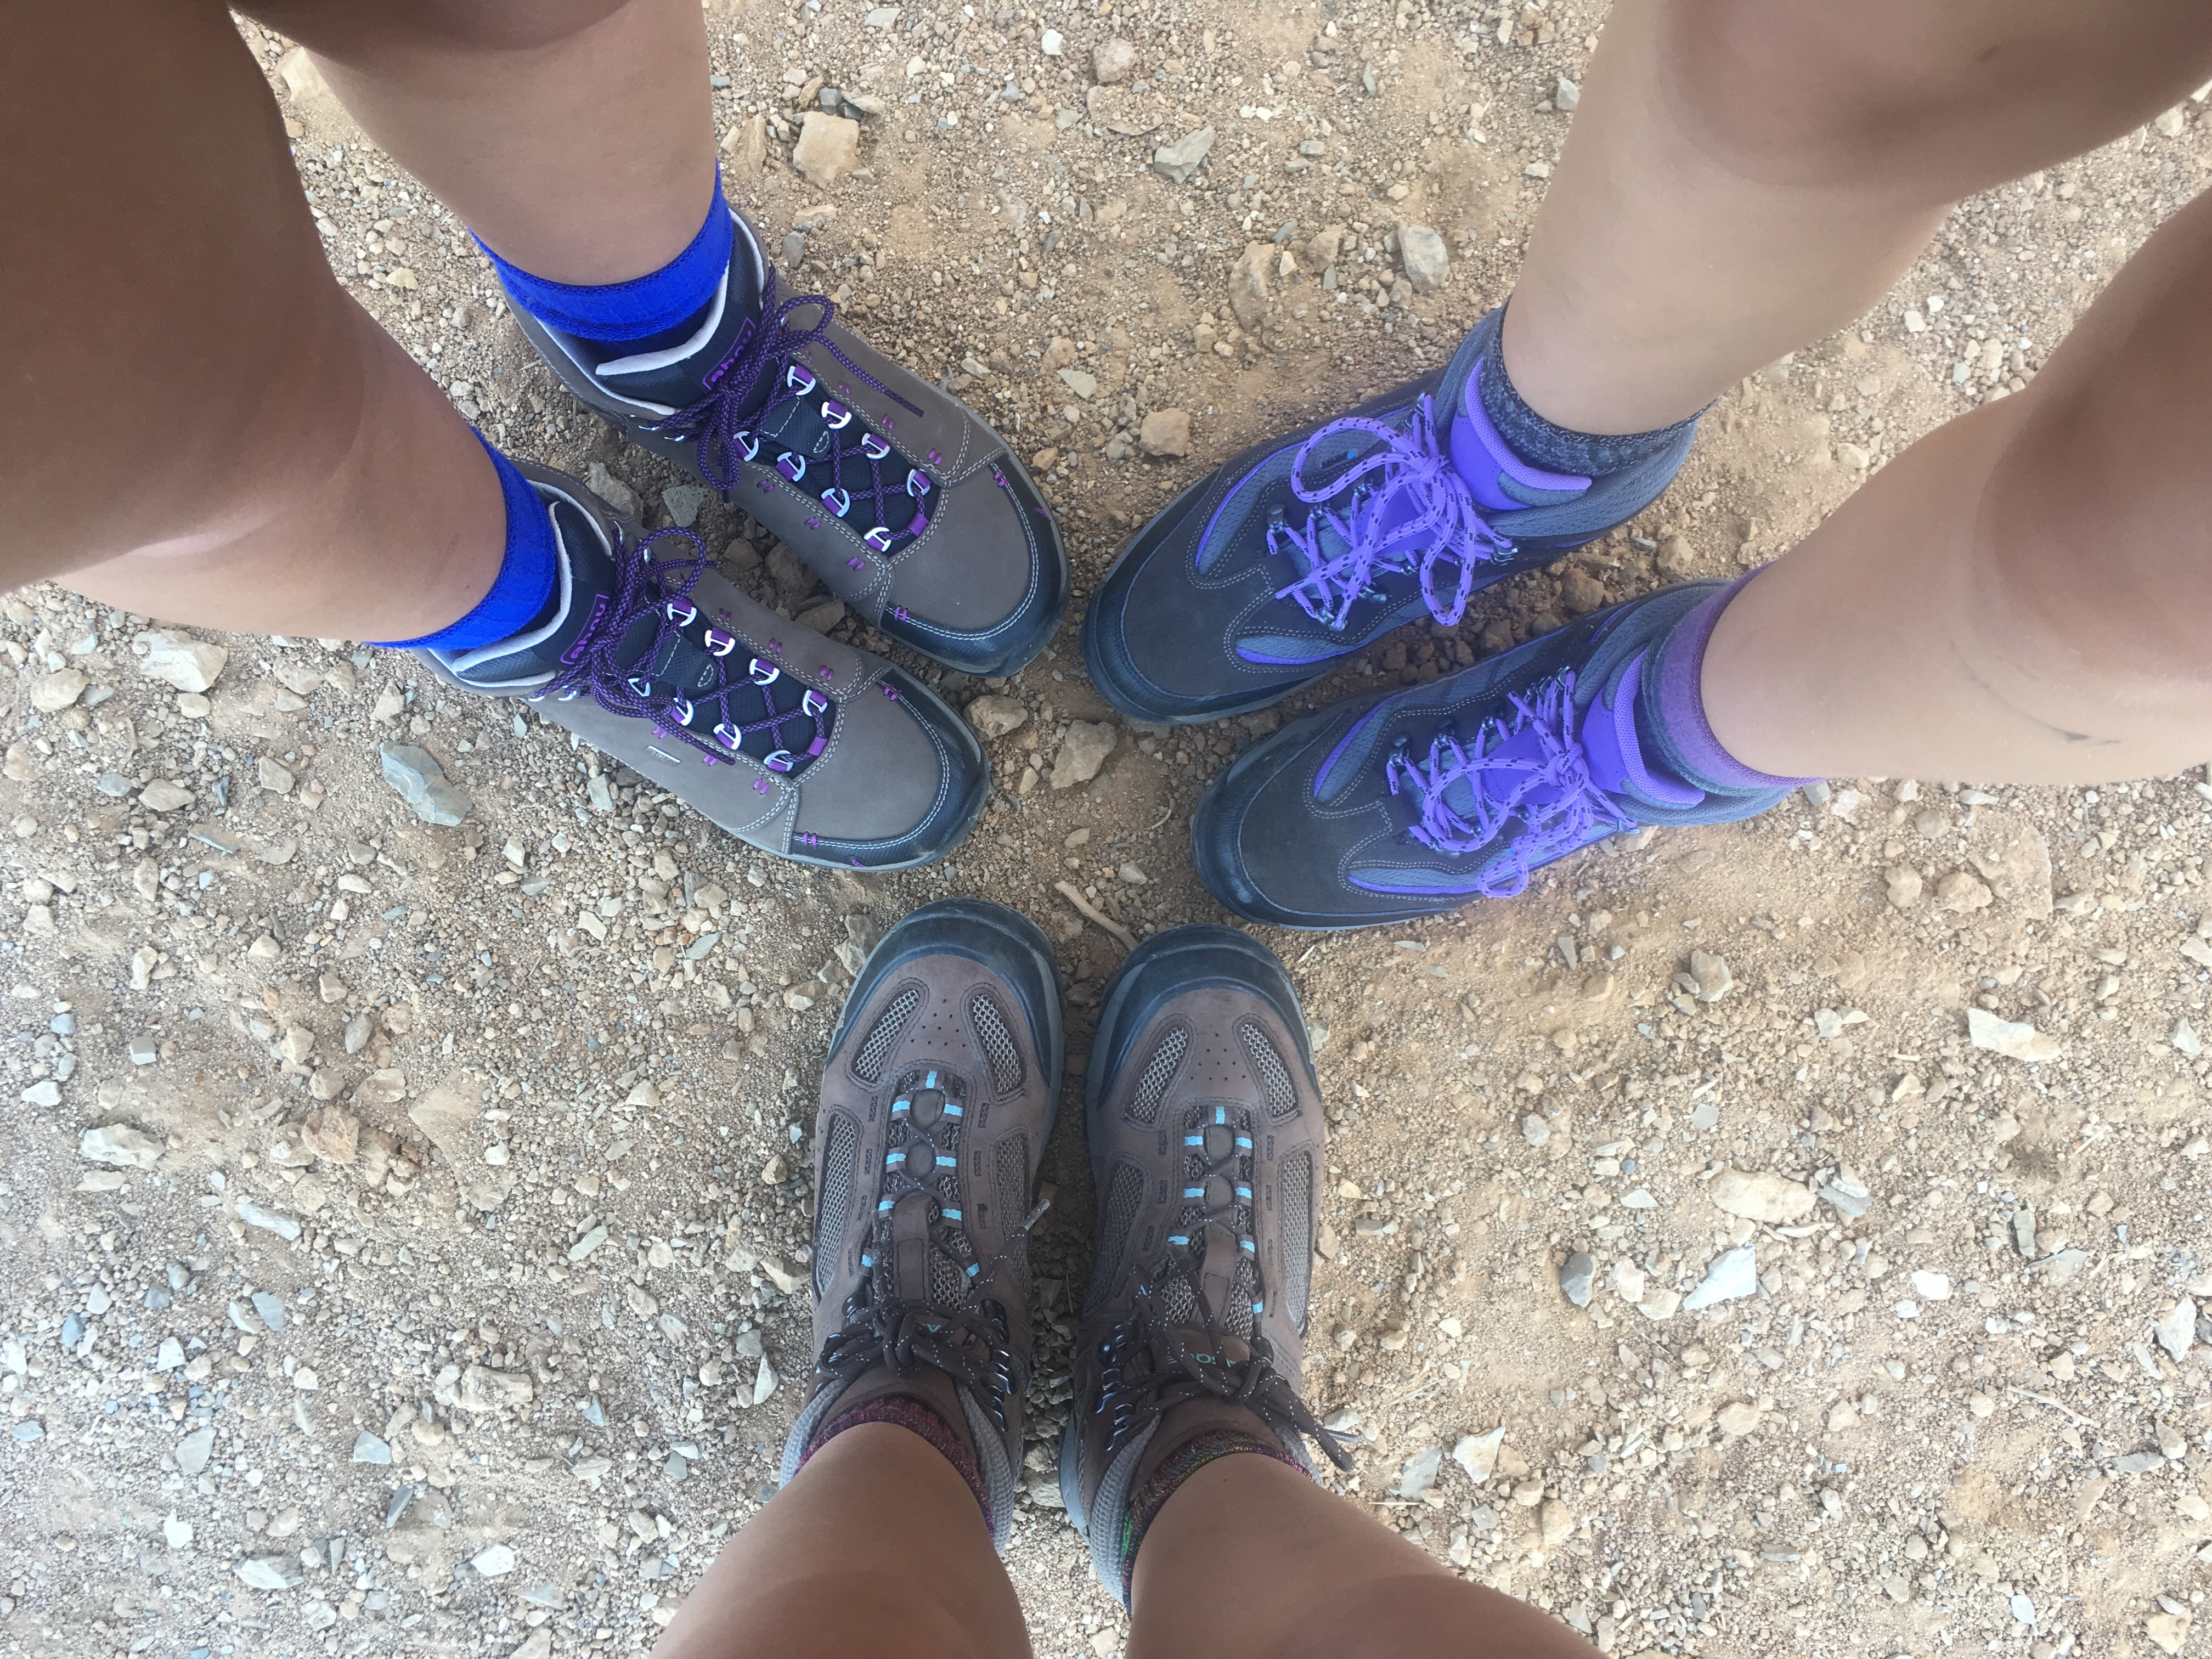 Sister's Hiking Boots